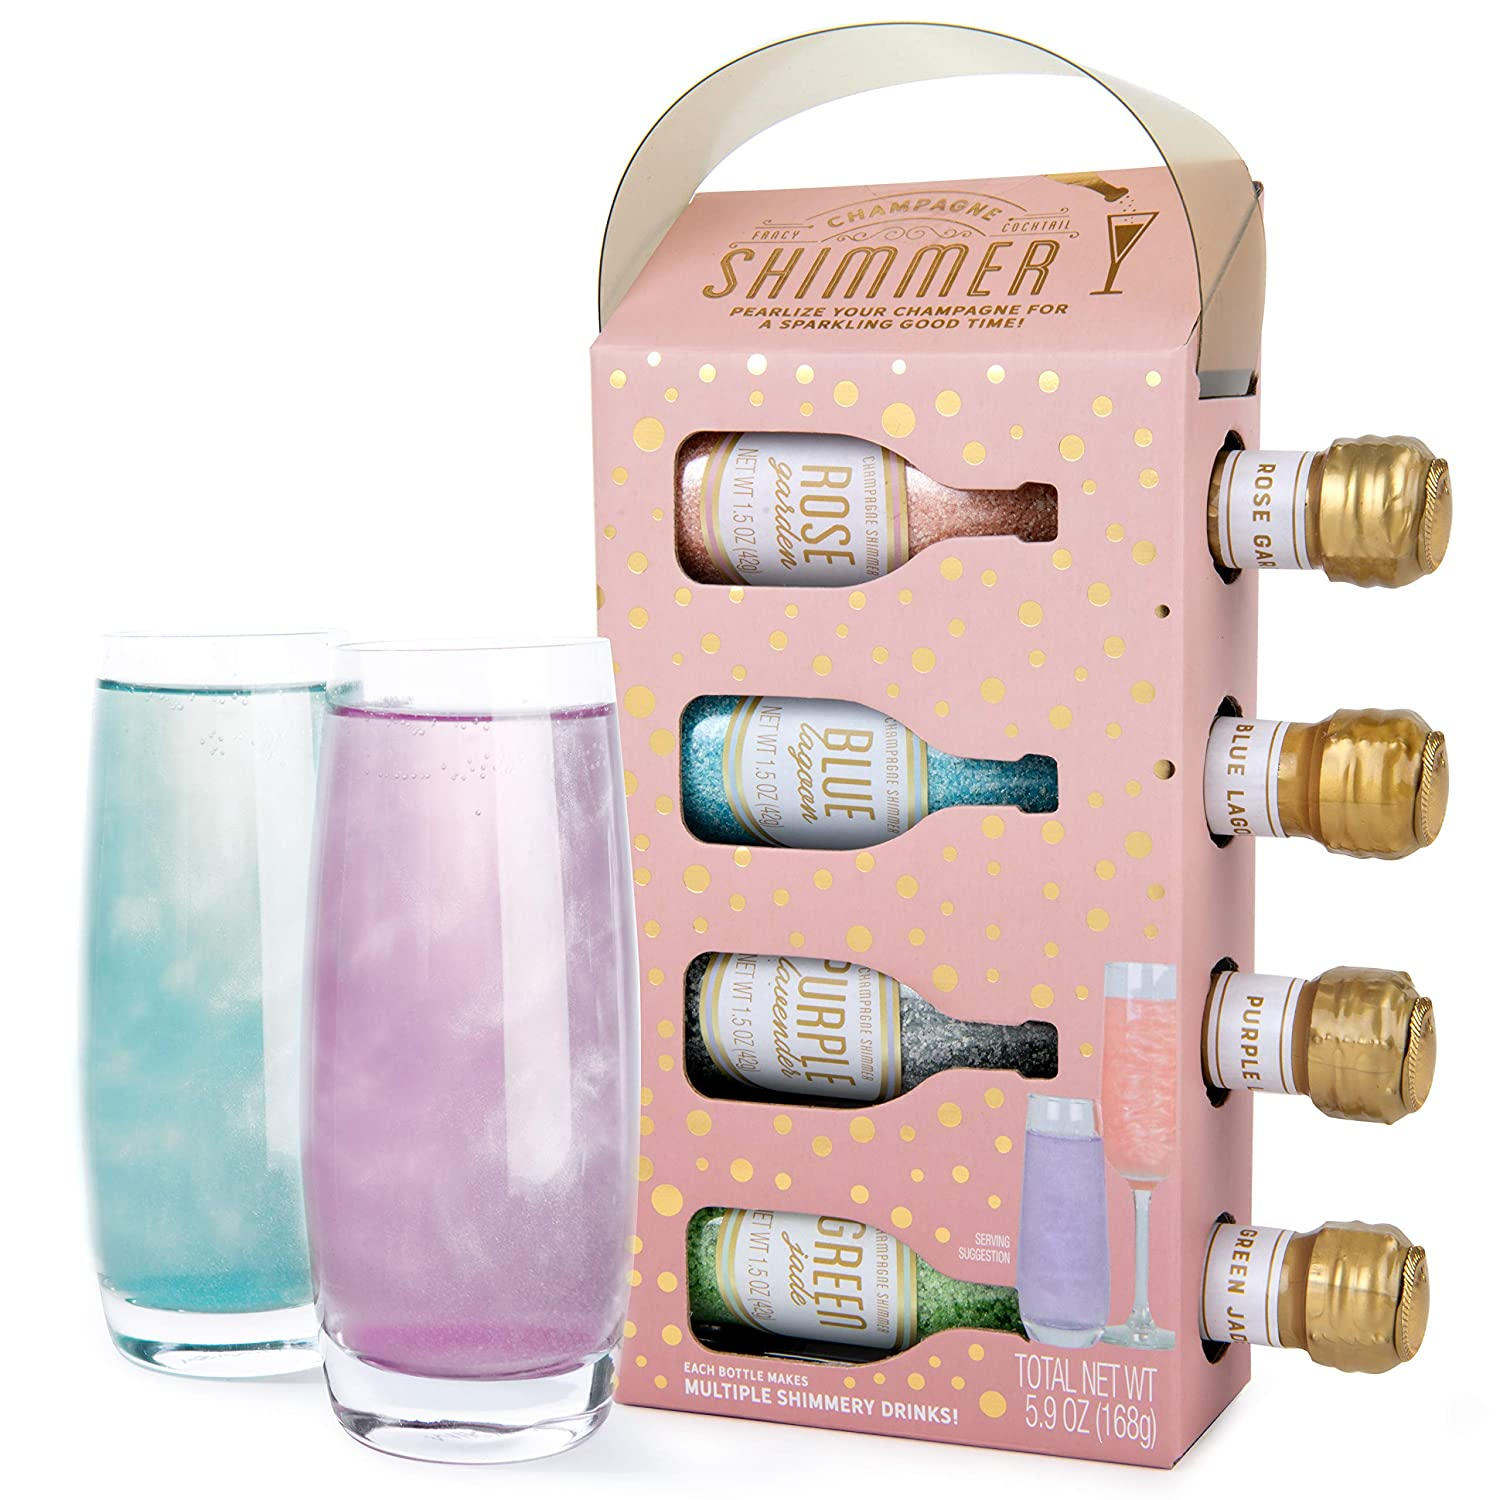 Thoughtfully Gifts Champagne Shimmer Set next to two glasses